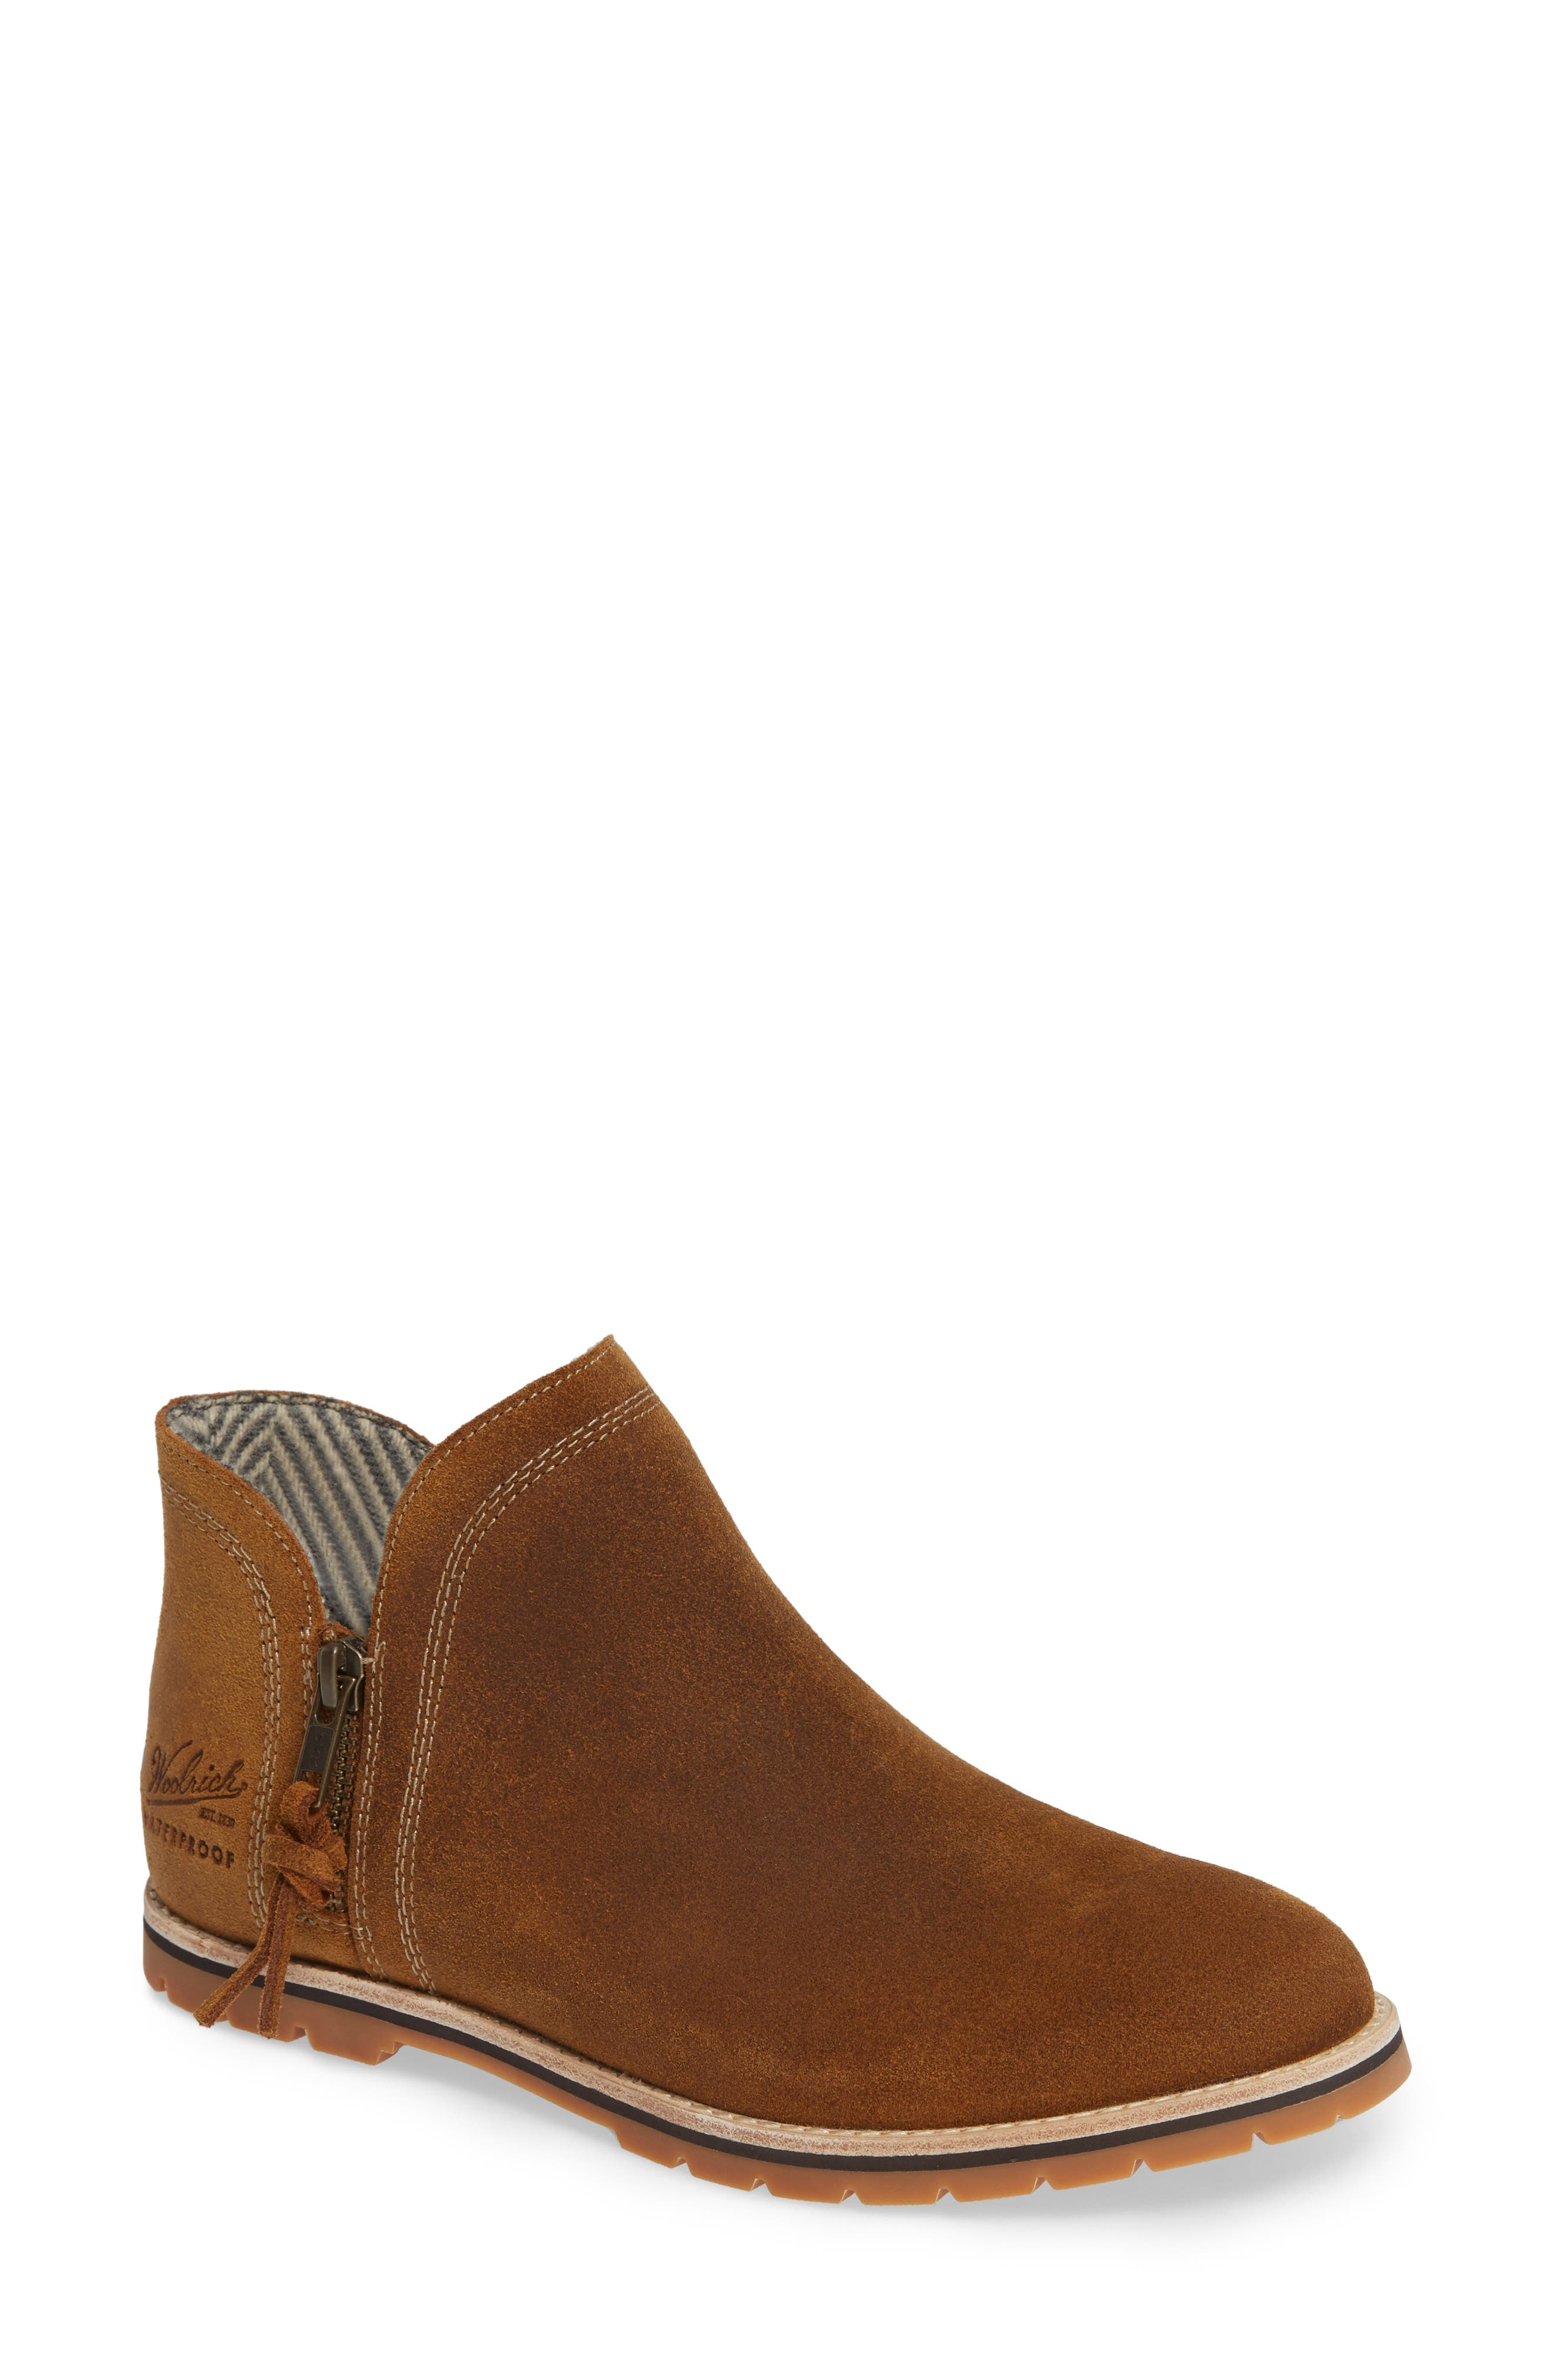 WOOLRICH,                             Bly Waterproof Bootie,                             Main thumbnail 1, color,                             TENOR SUEDE